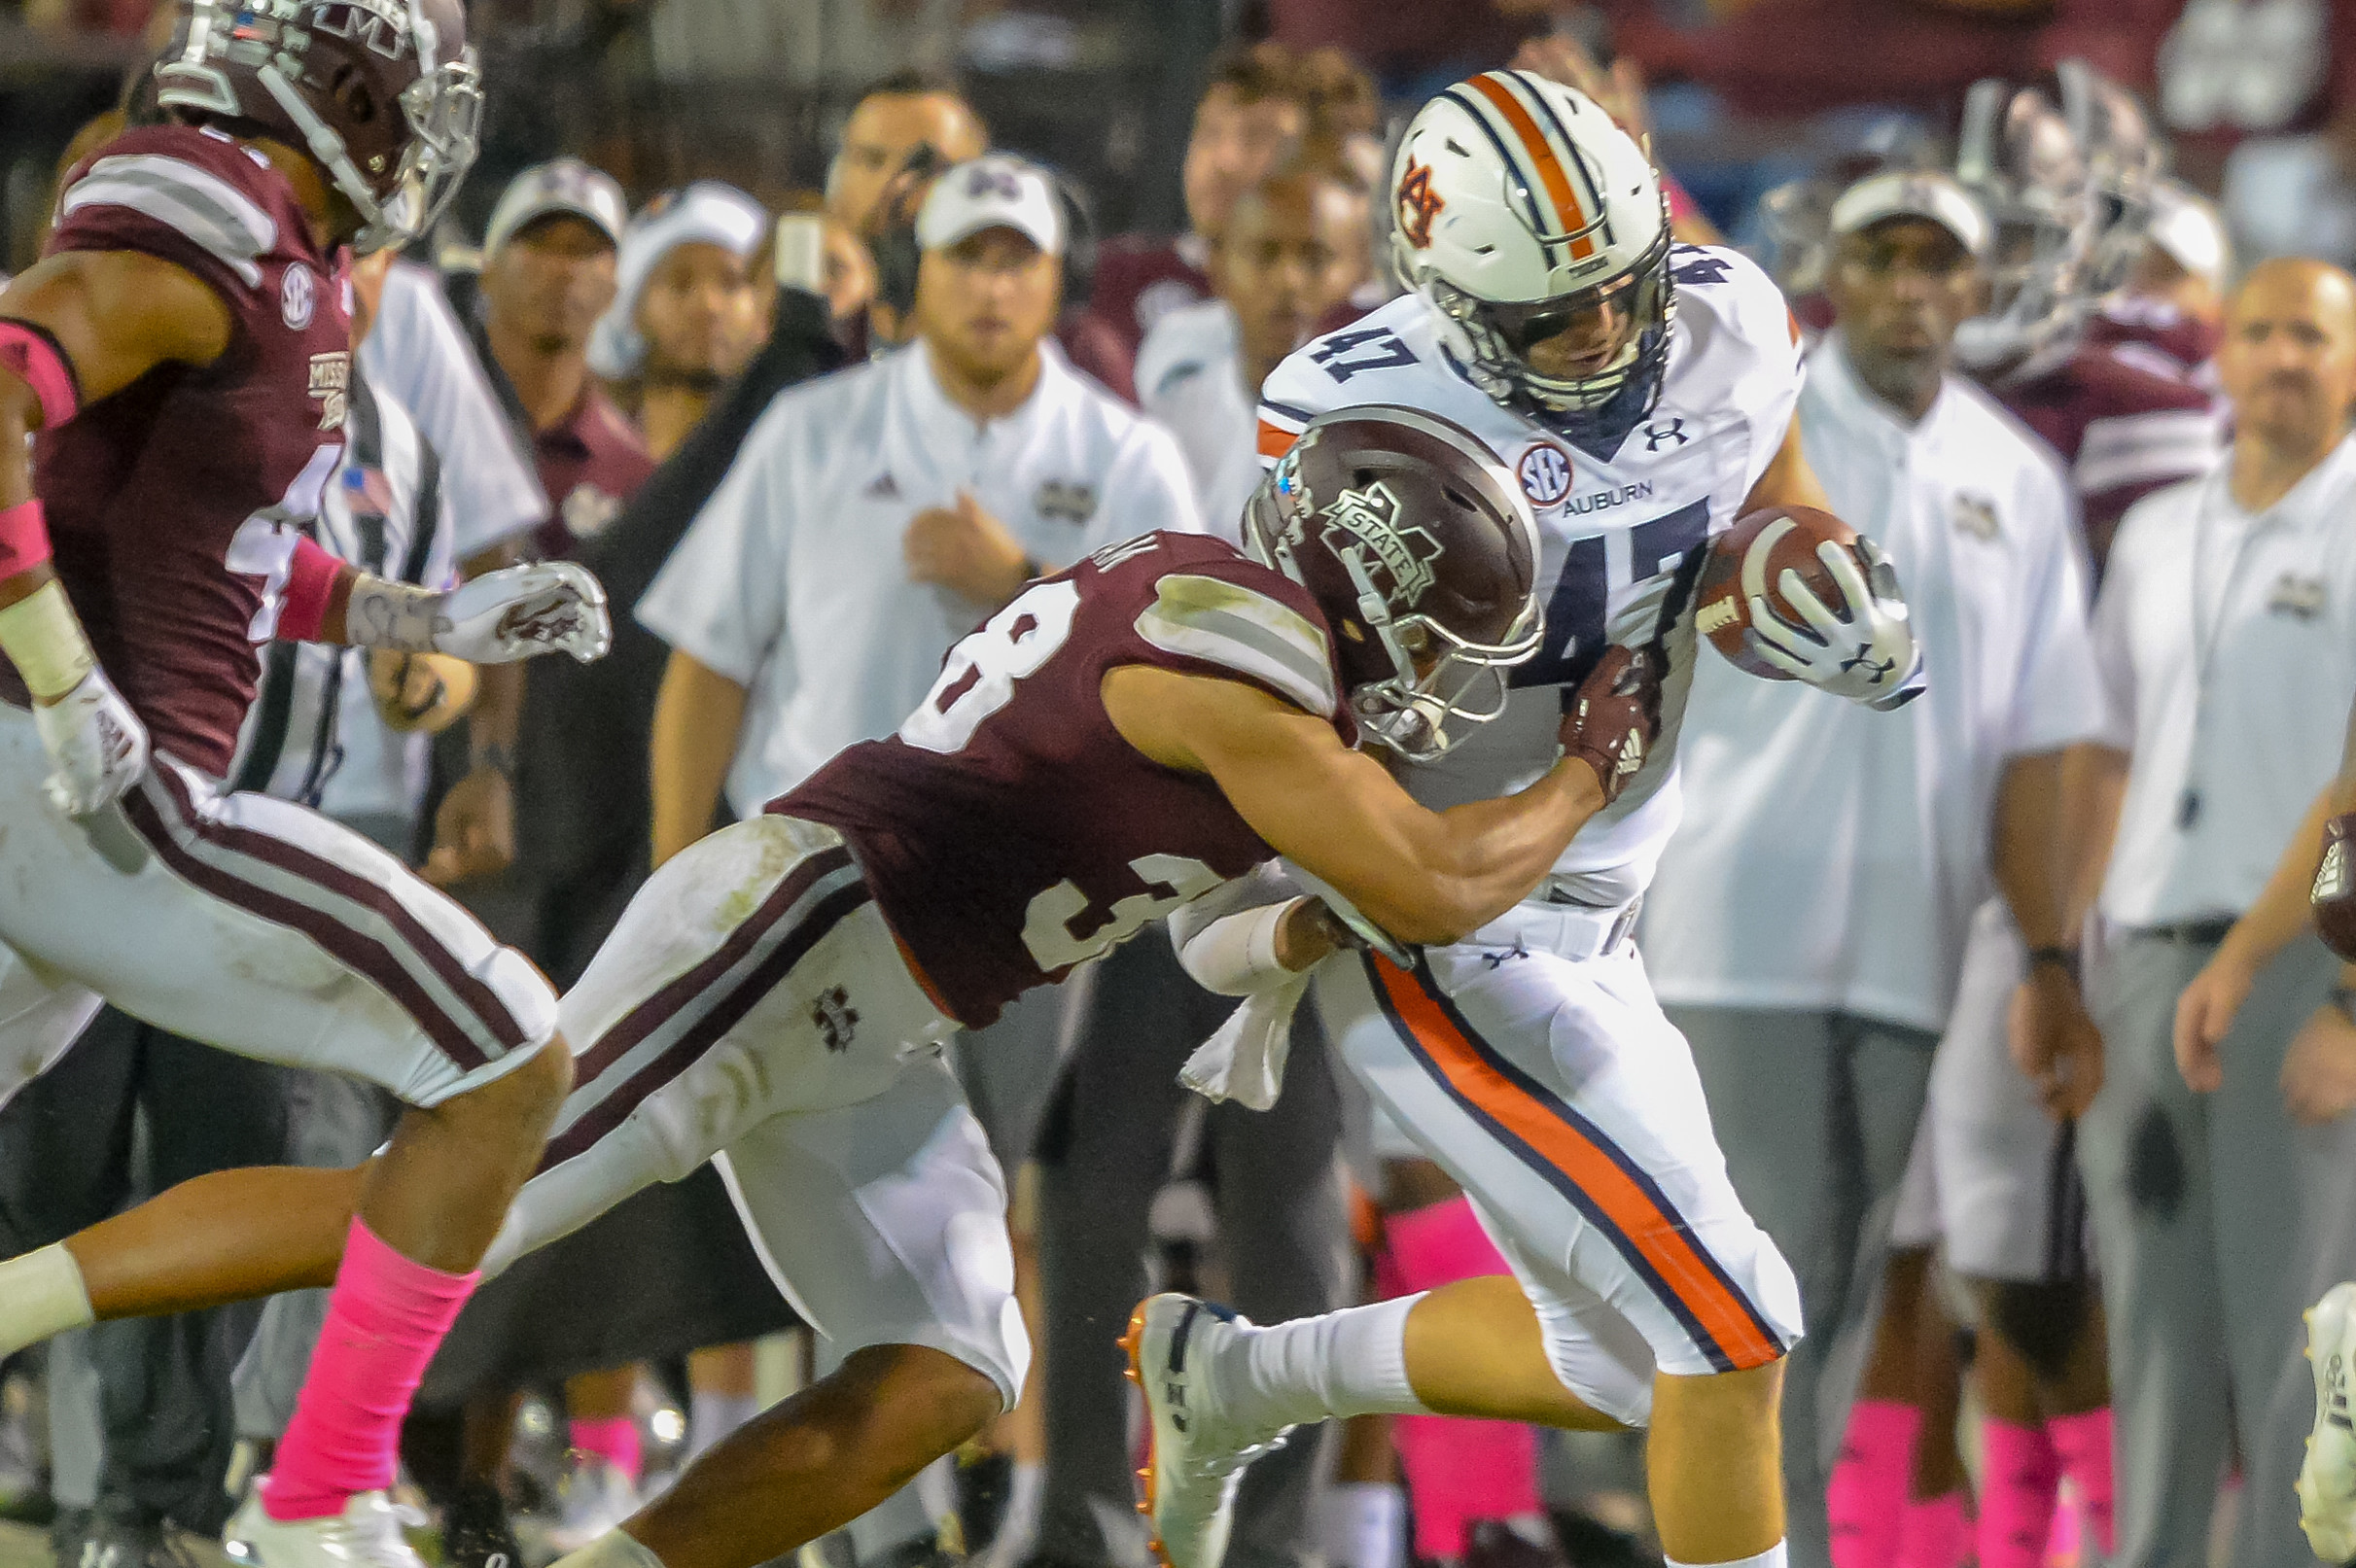 Mississippi State Bulldogs safety Johnathan Abram (38) pushes Auburn Tigers tight end John Shenker (47) out of bounds during the second half of Saturday's game, at Davis Wade Stadium in Starkville, MS. Daily Mountain Eagle -  Jeff Johnsey